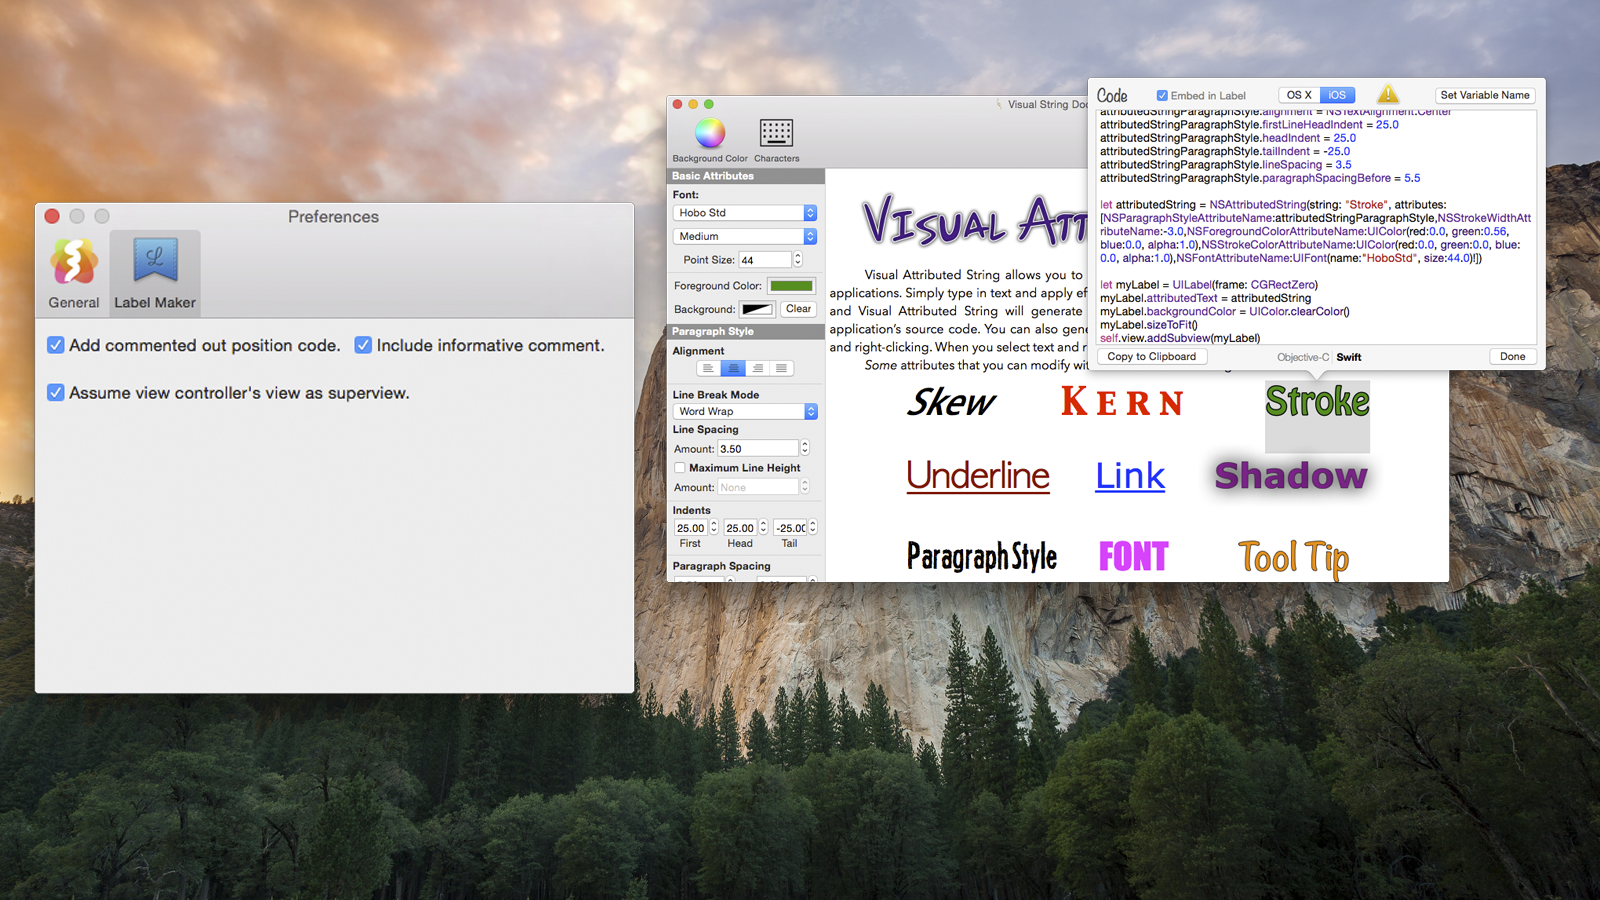 Visual Attributed String Mac app screenshot showing both the main app window and the preferences window.